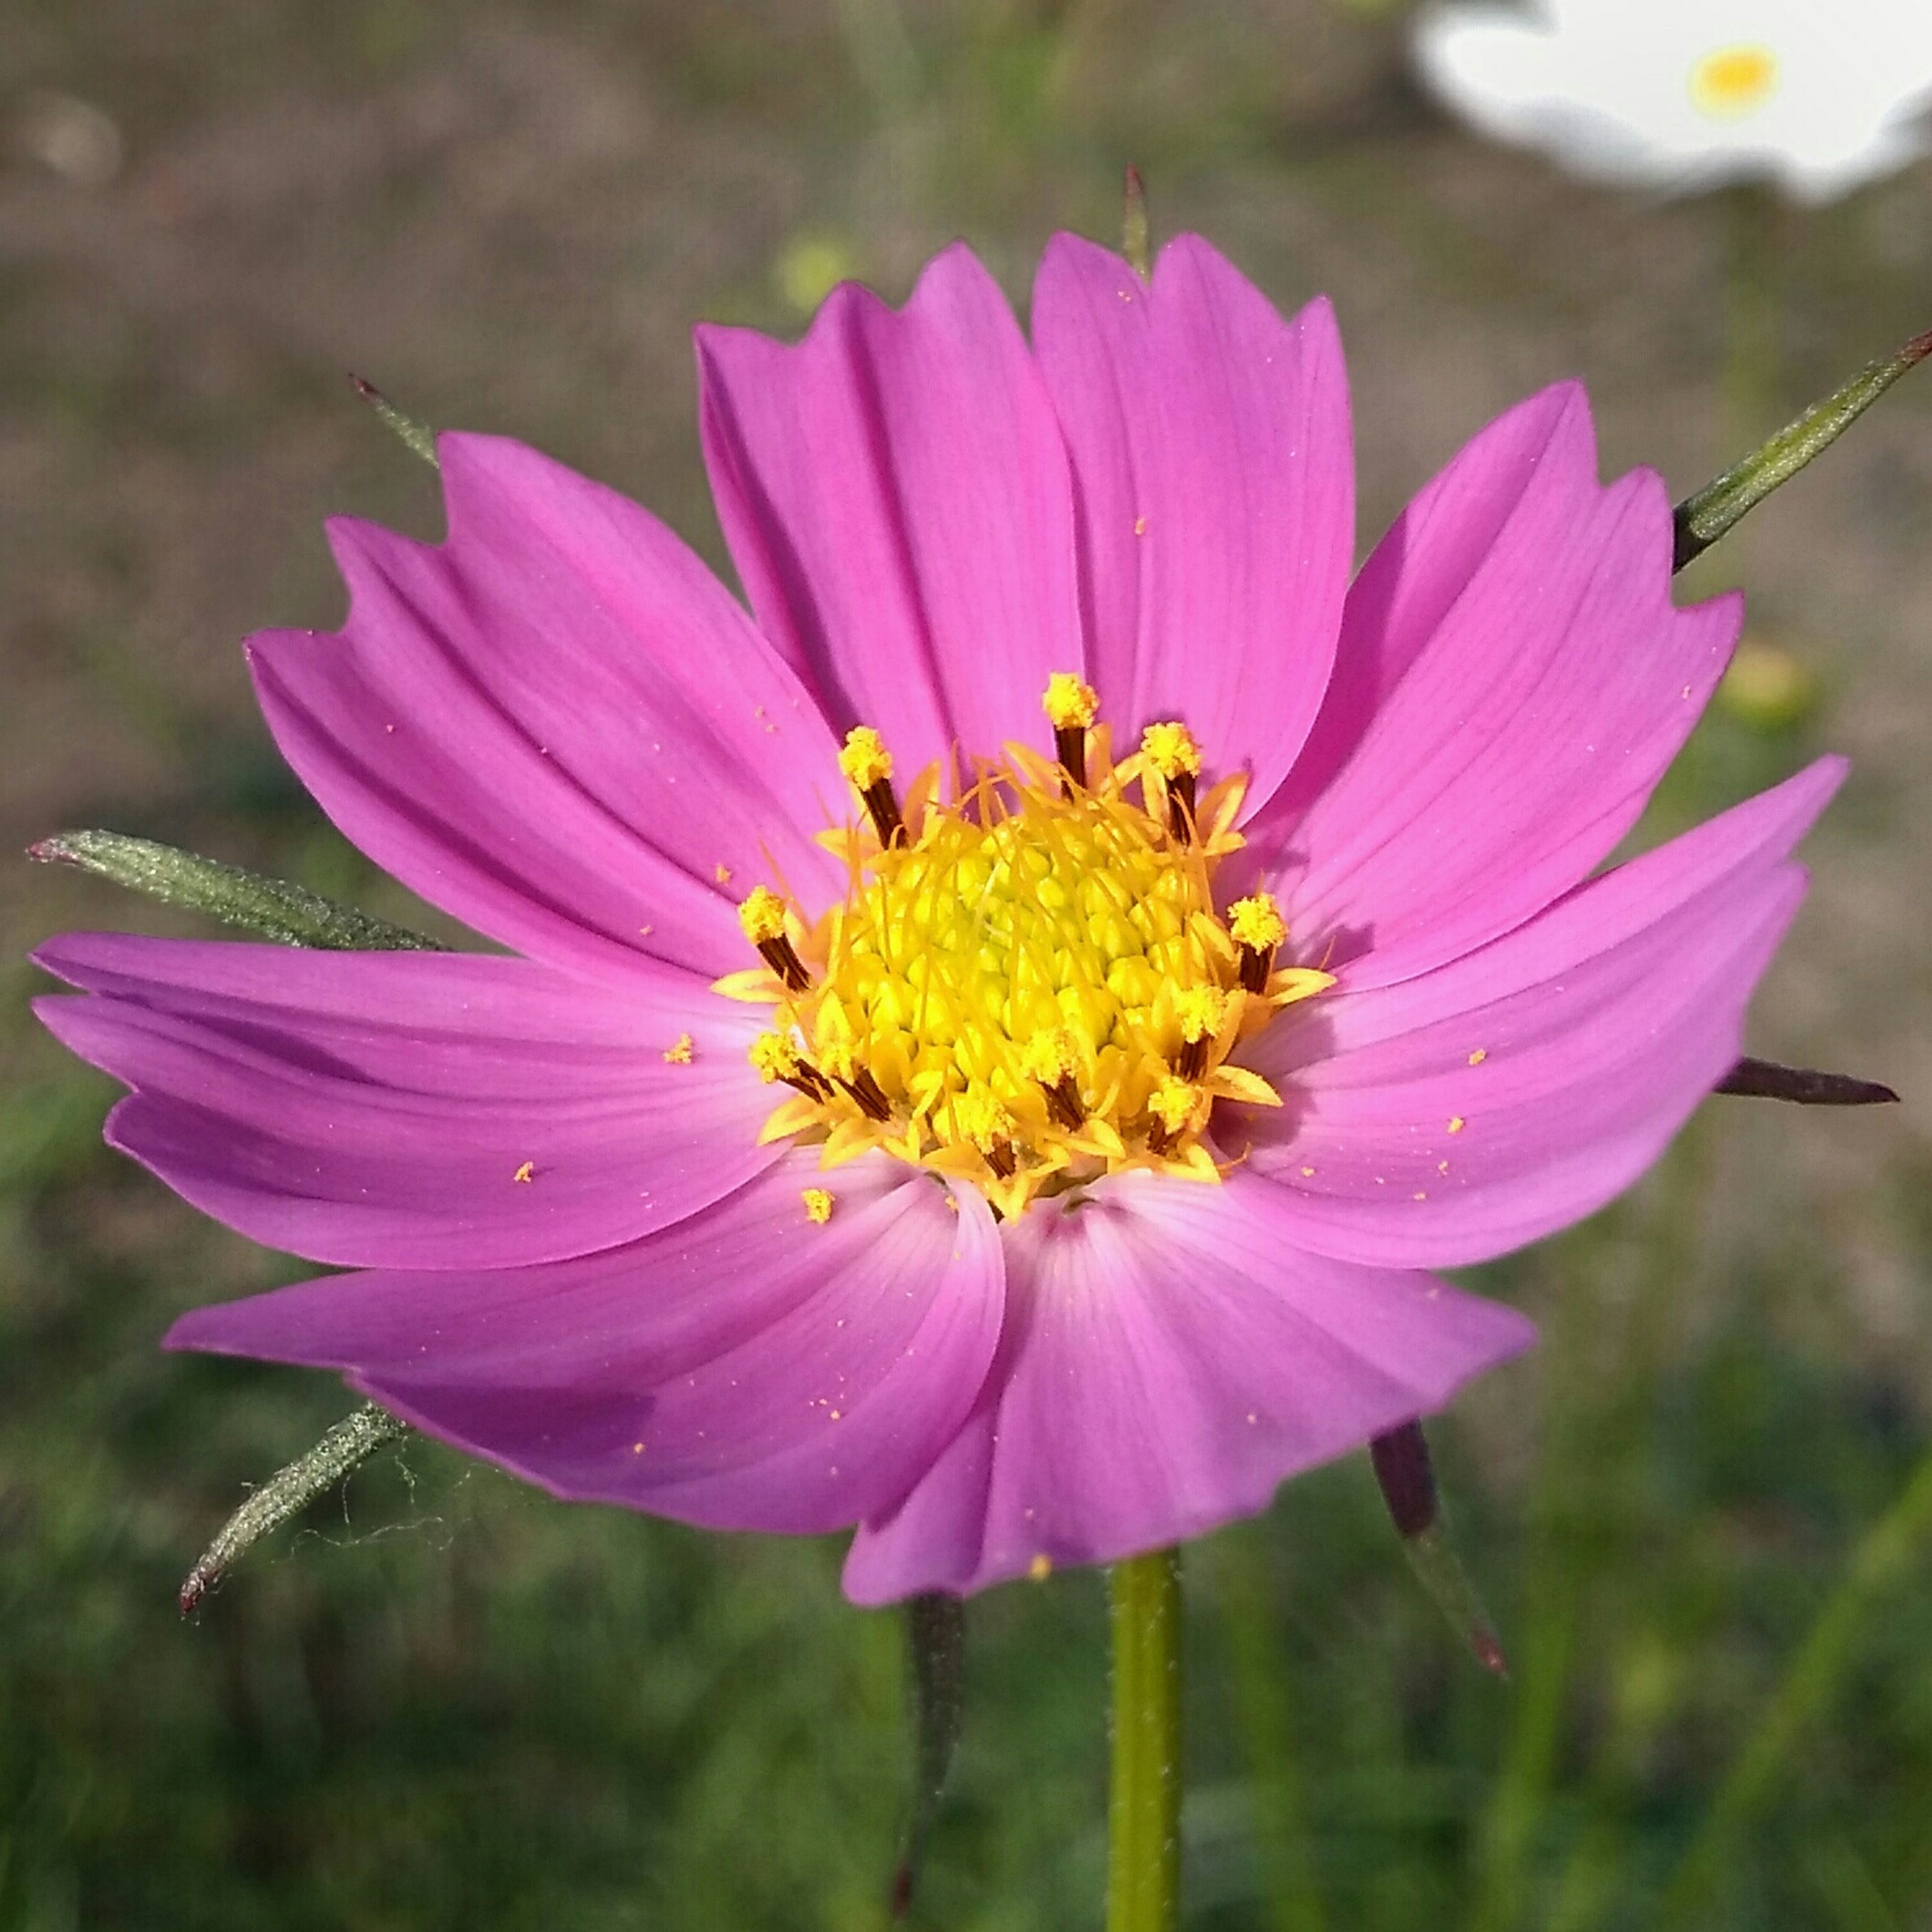 flower, petal, freshness, flower head, fragility, pink color, animal themes, one animal, single flower, animals in the wild, insect, close-up, beauty in nature, focus on foreground, wildlife, growth, pollen, nature, purple, blooming